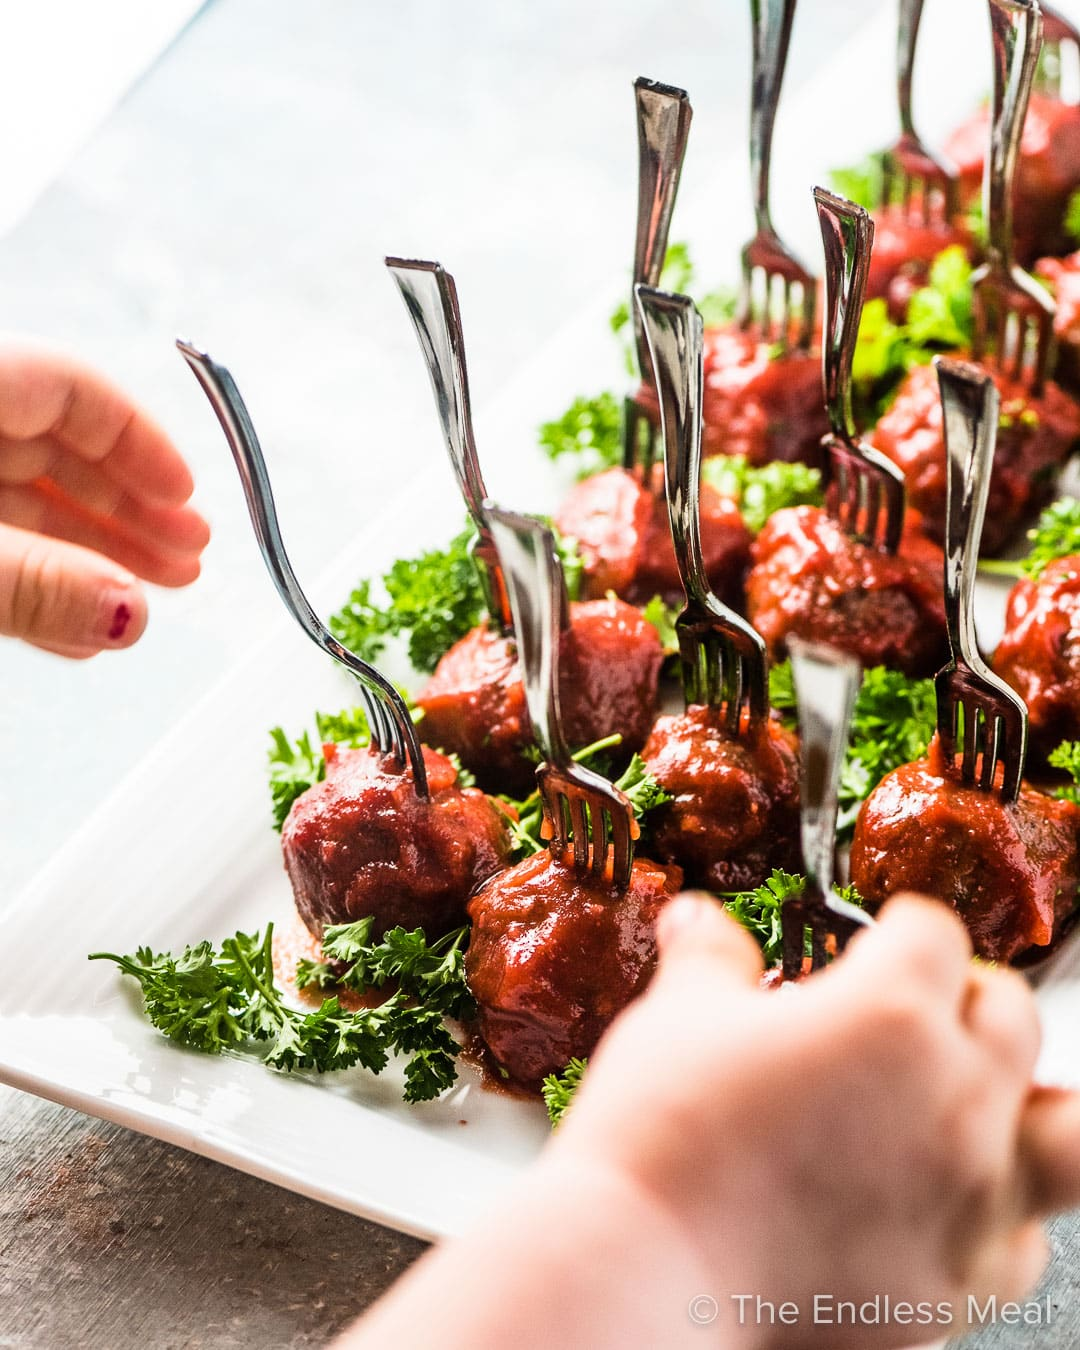 Hands reaching for these cranberry meatballs on a white plate.